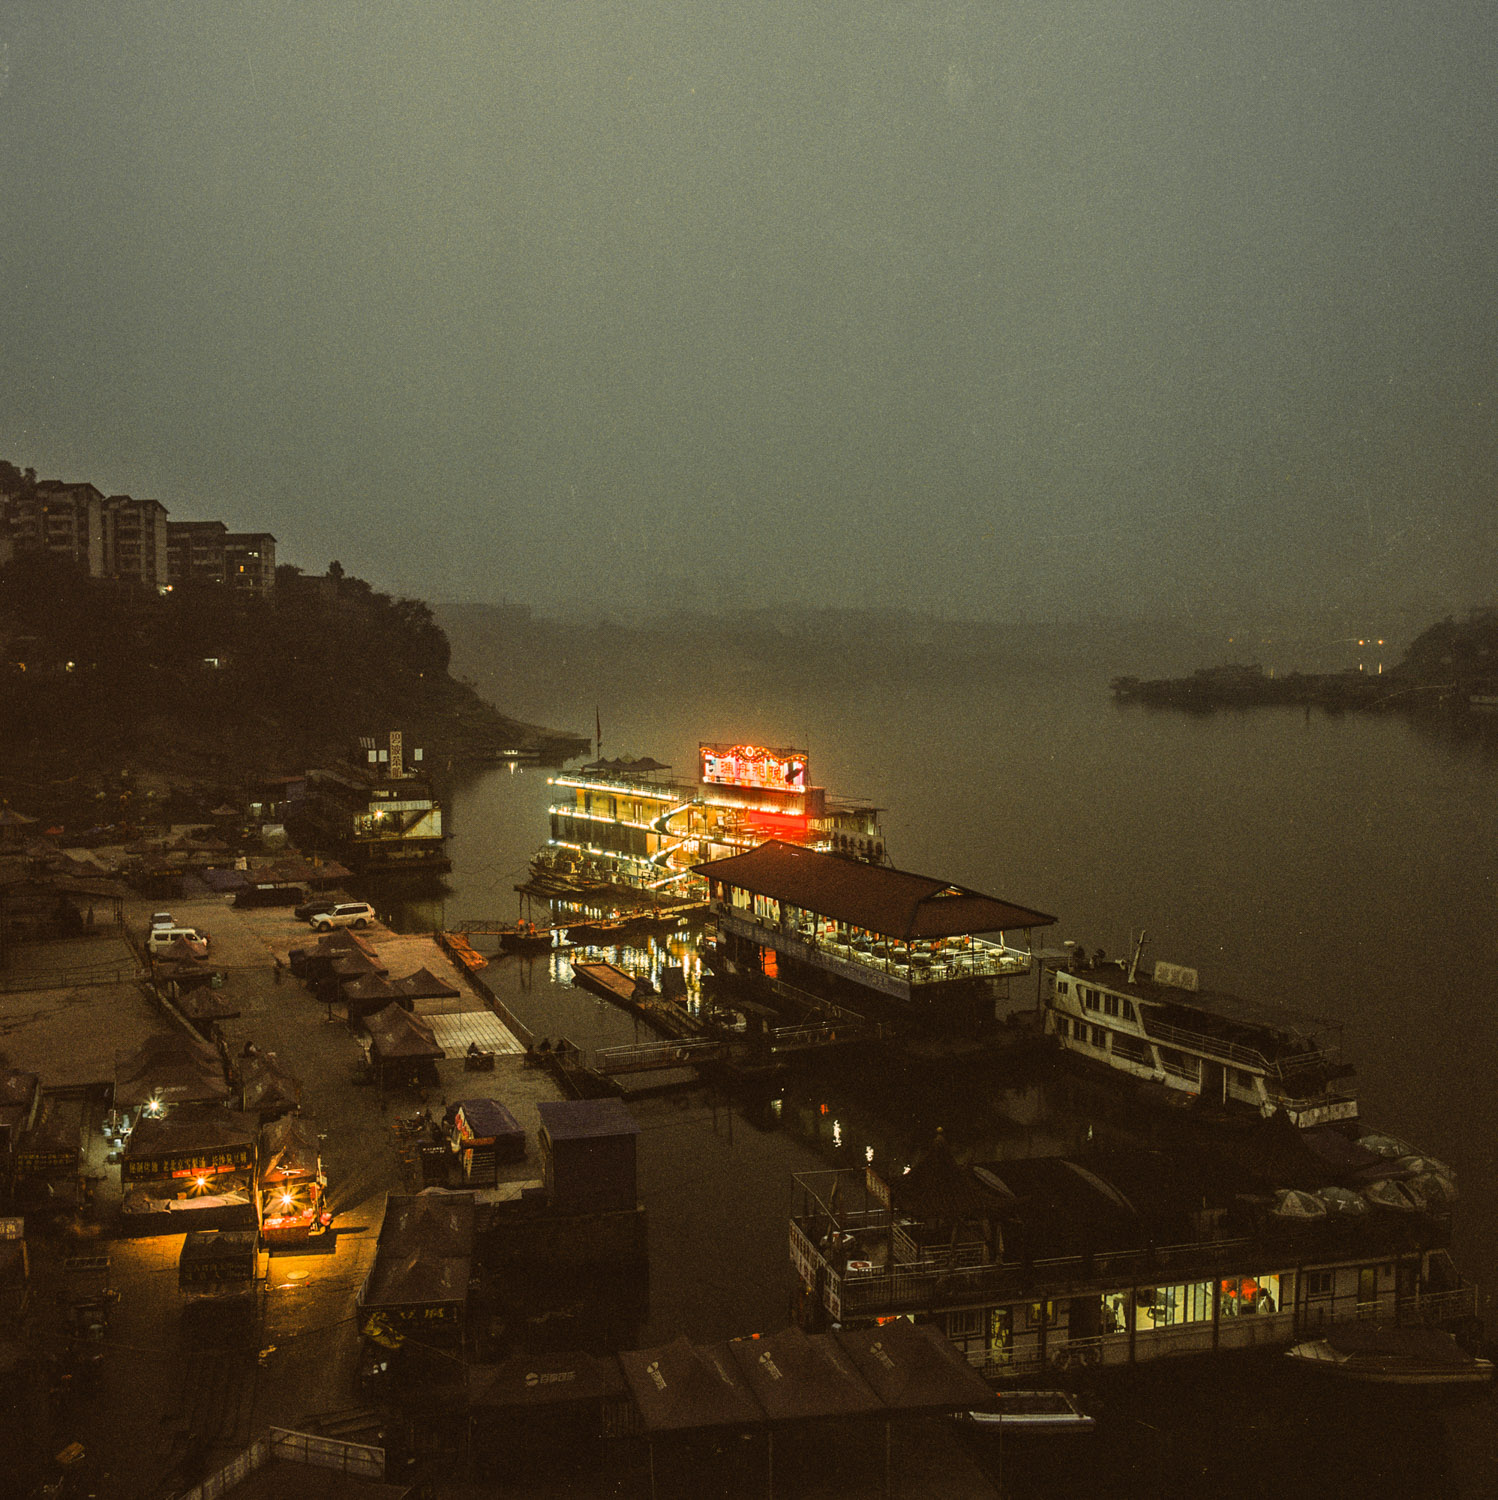 Restaurant on Jia Ling river